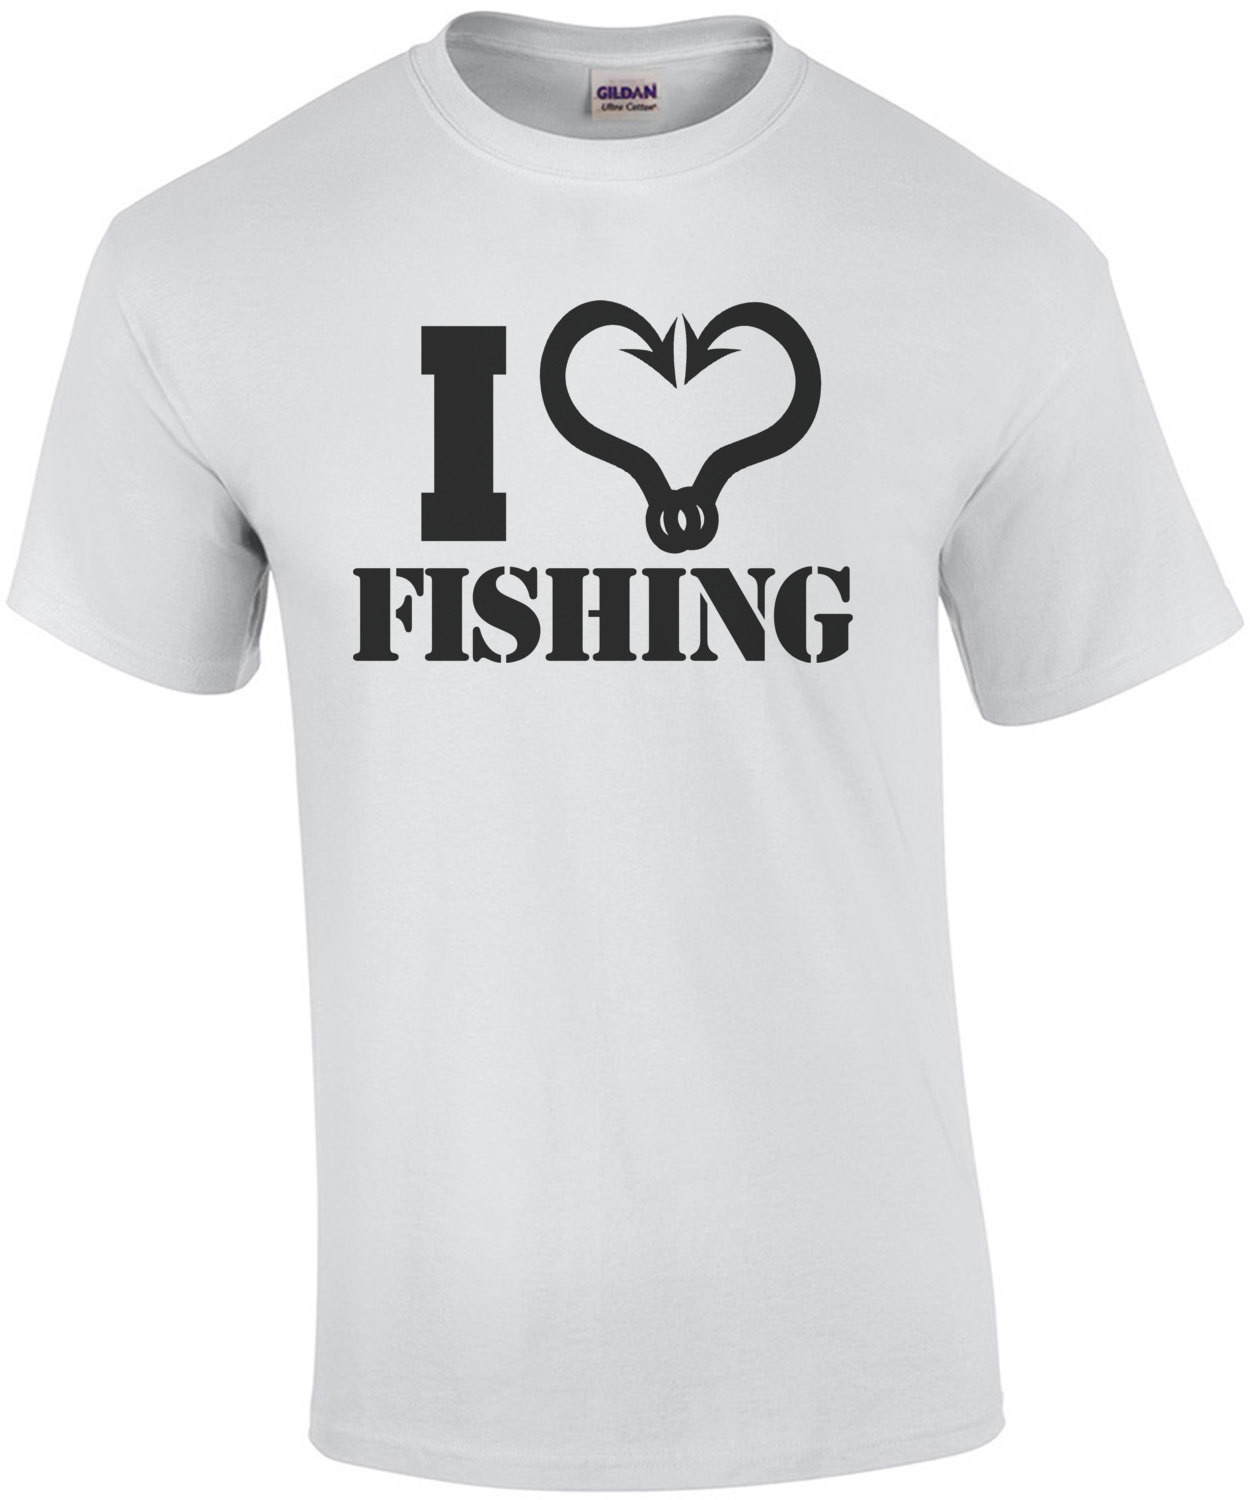 I Heart Fishing T-Shirt